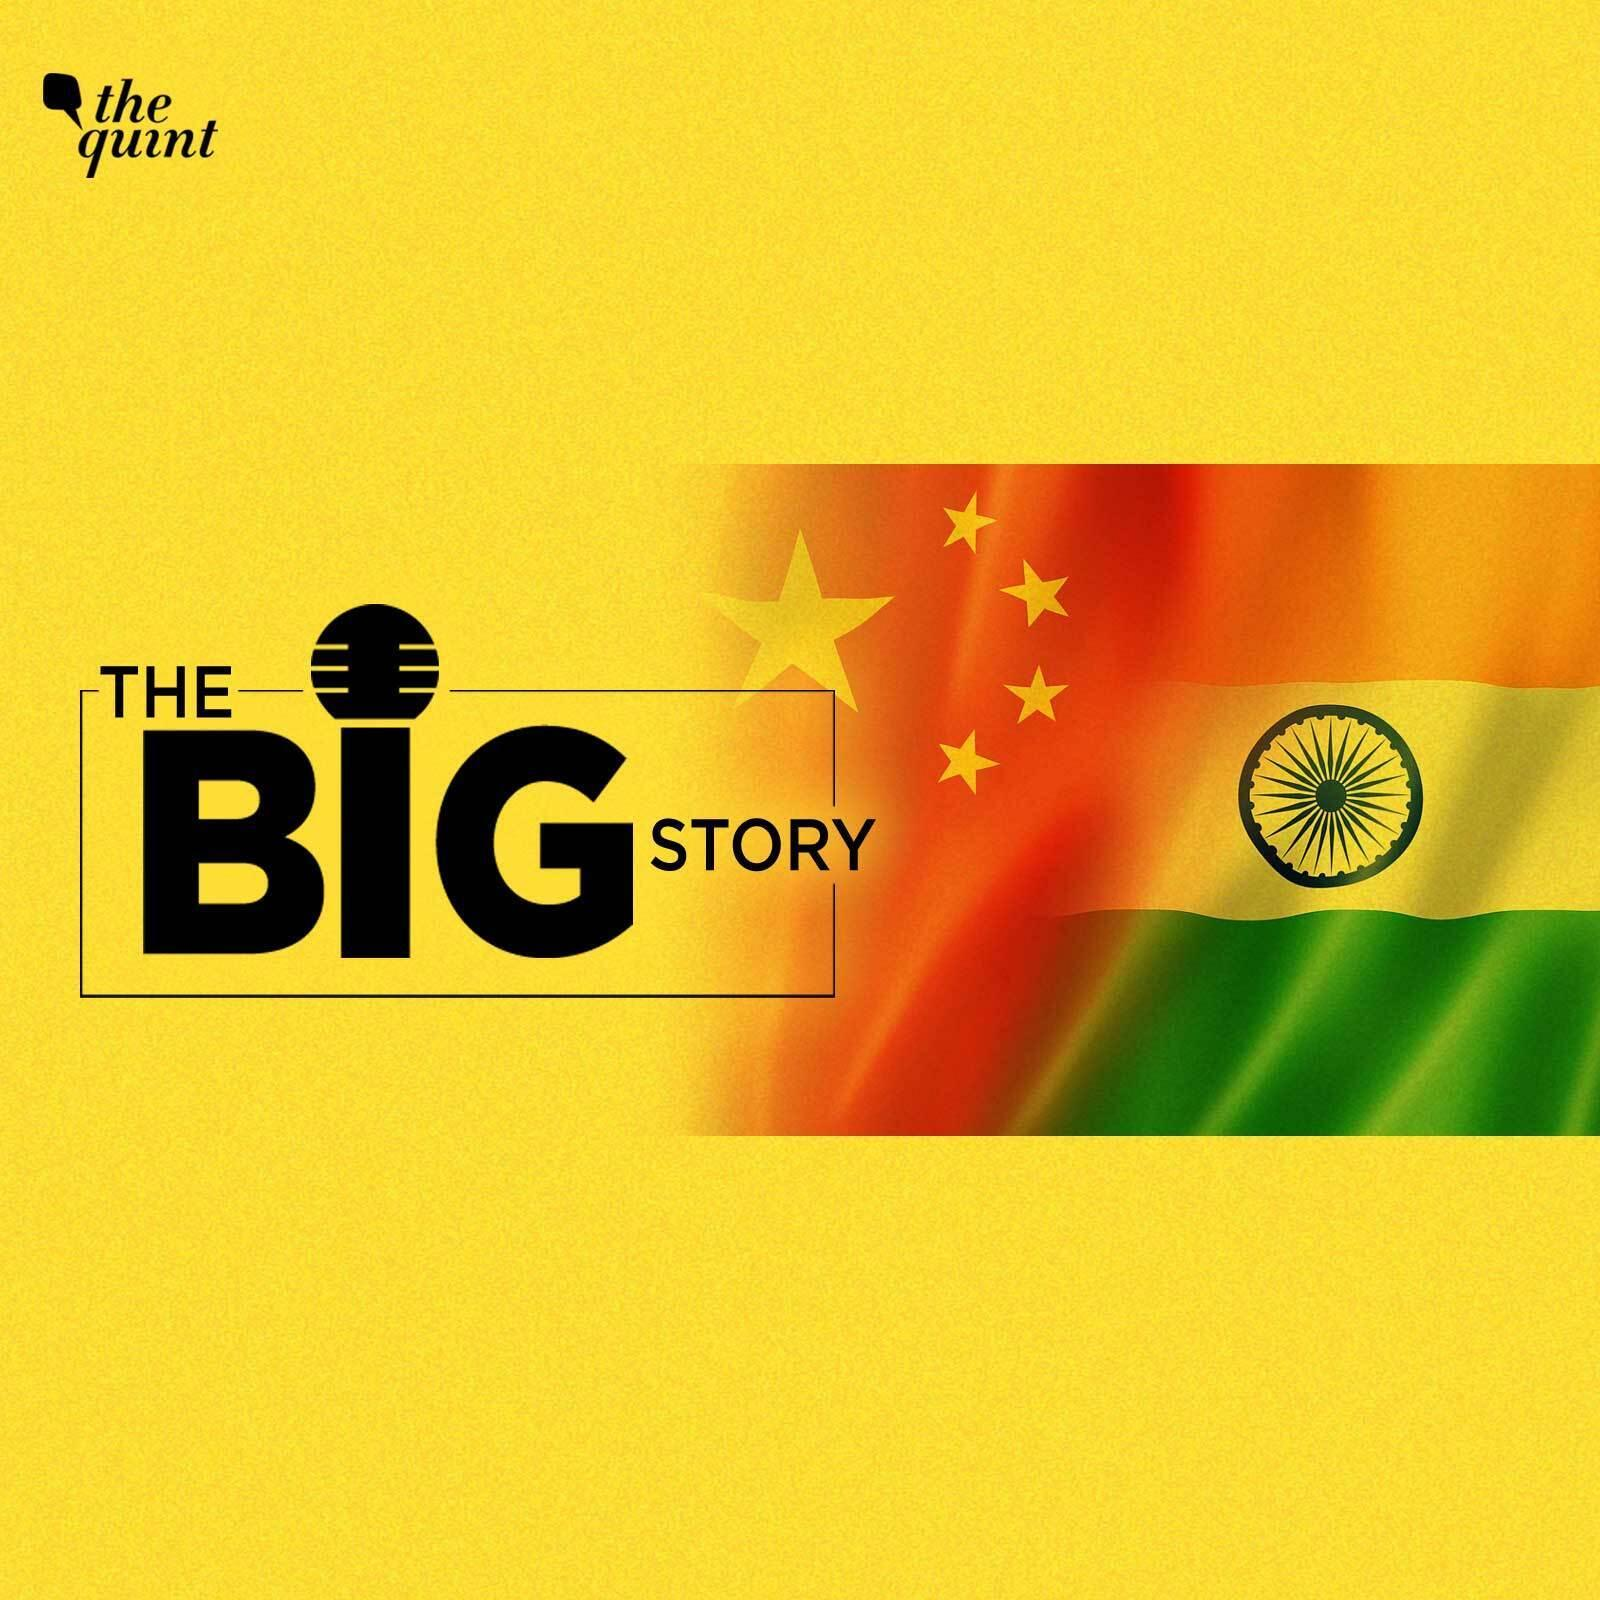 636: Does Disengagement Mean an End to Hostile India-China Relations?